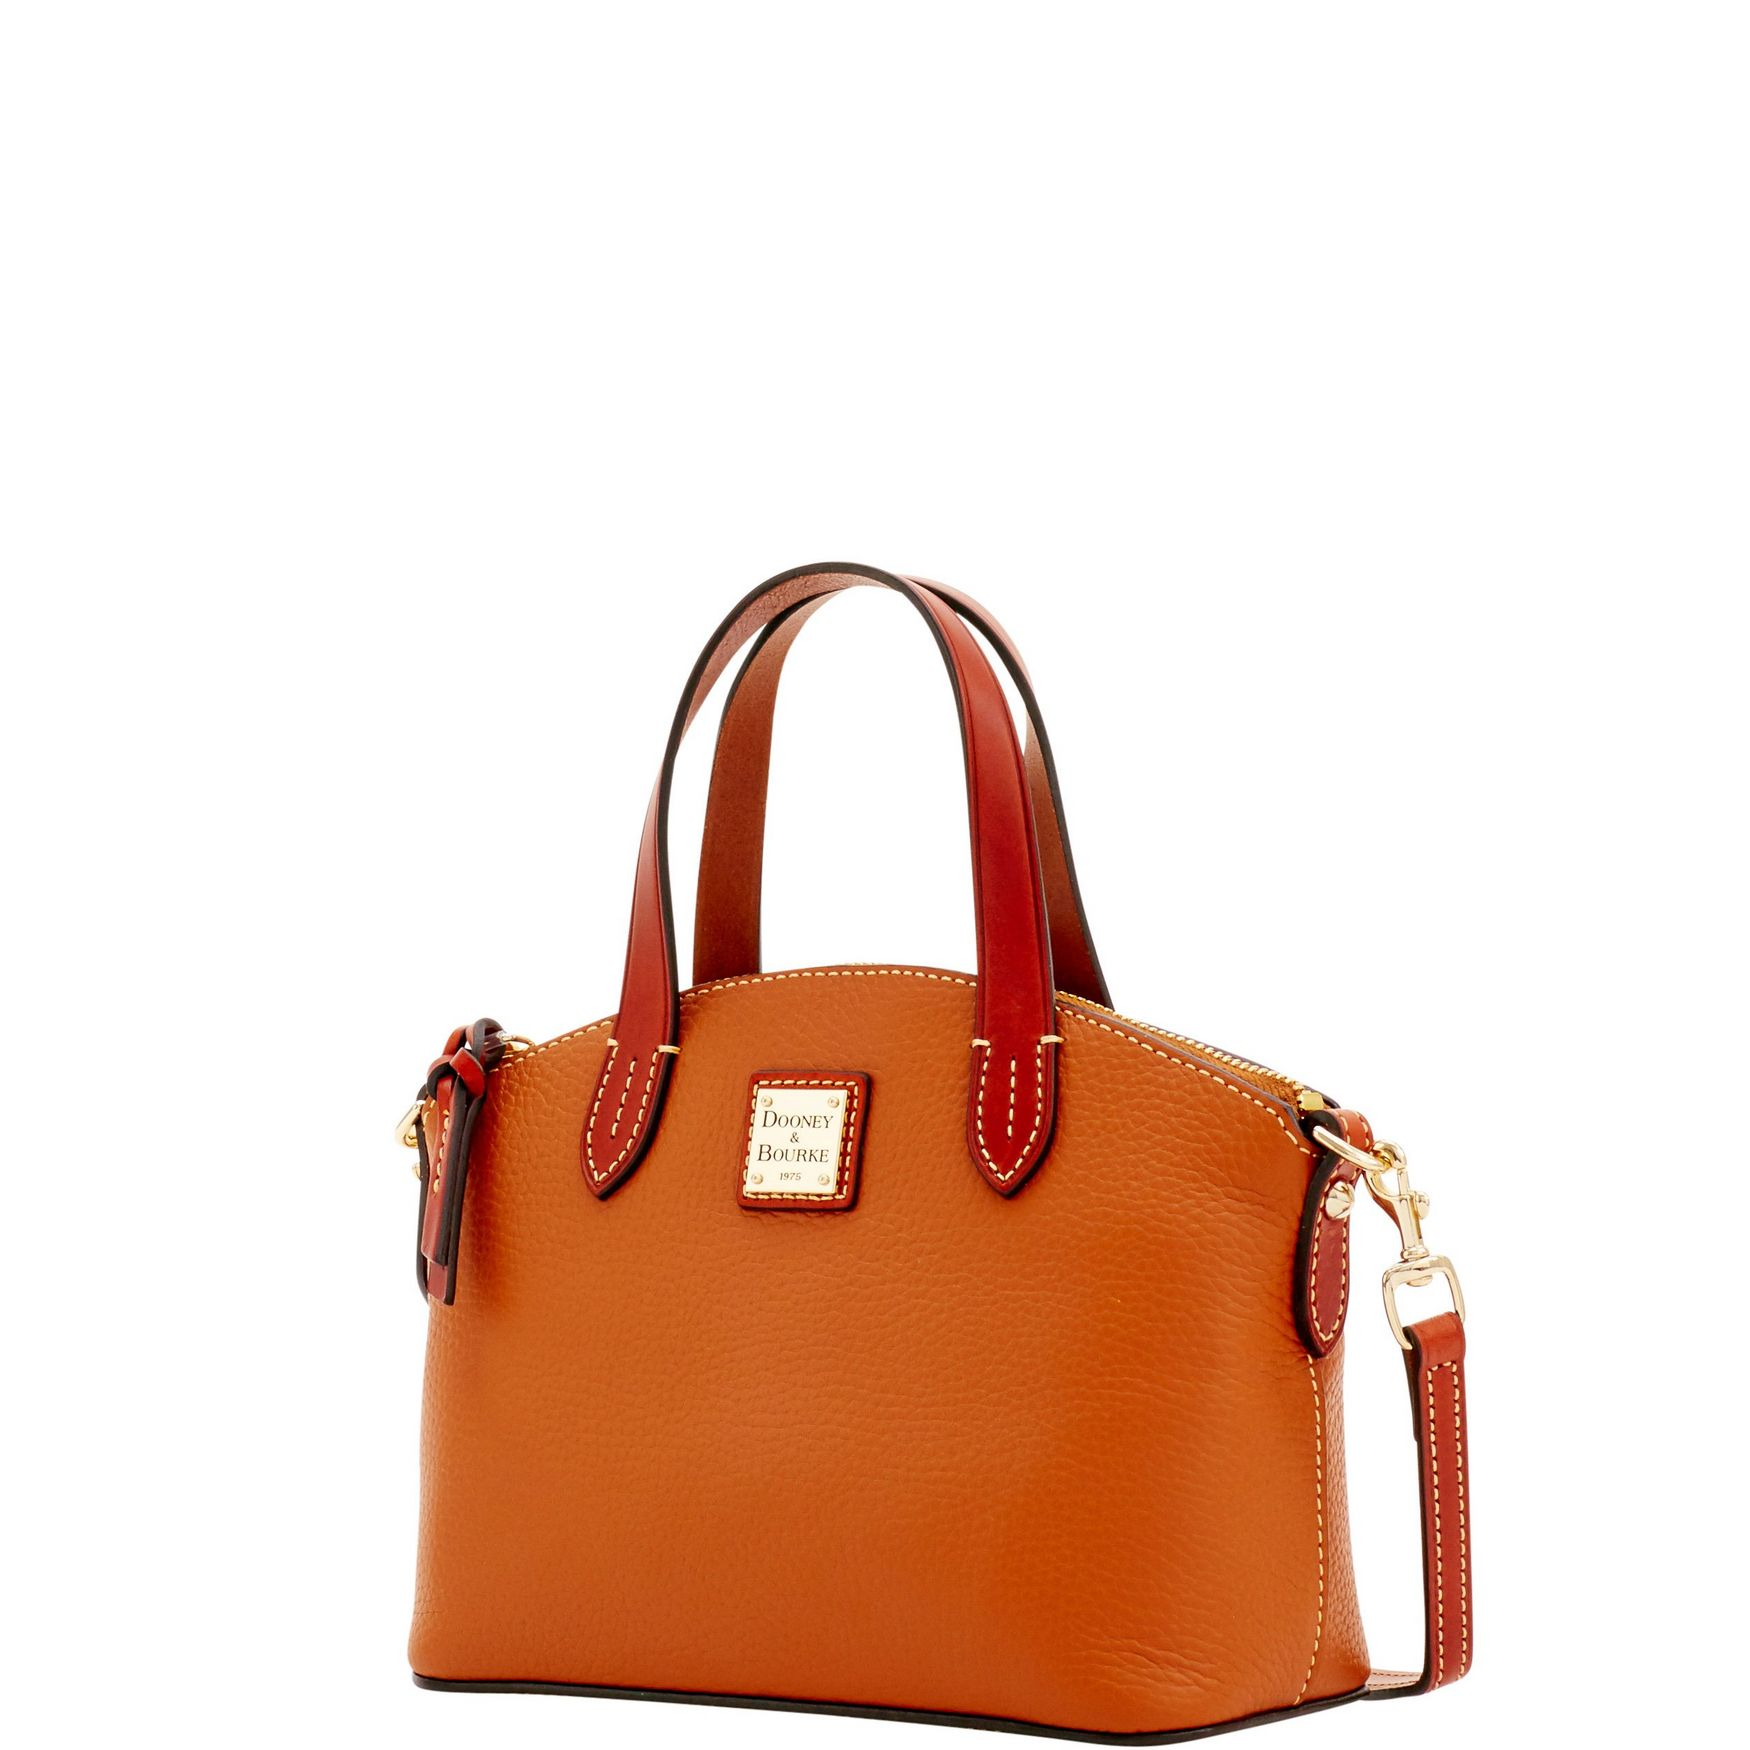 Dooney-amp-Bourke-Pebble-Grain-Ruby-Top-Handle-Bag thumbnail 19